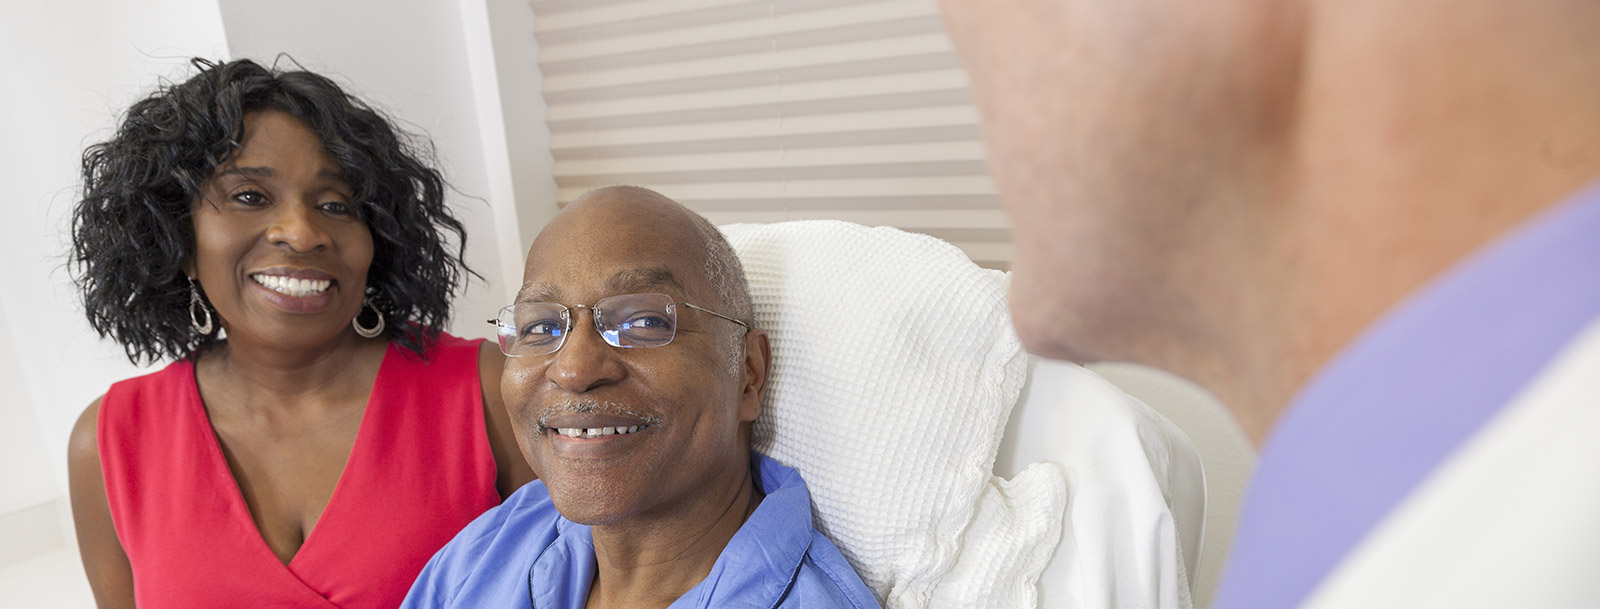 Resident getting help from a friendly doctor in Olathe senior living